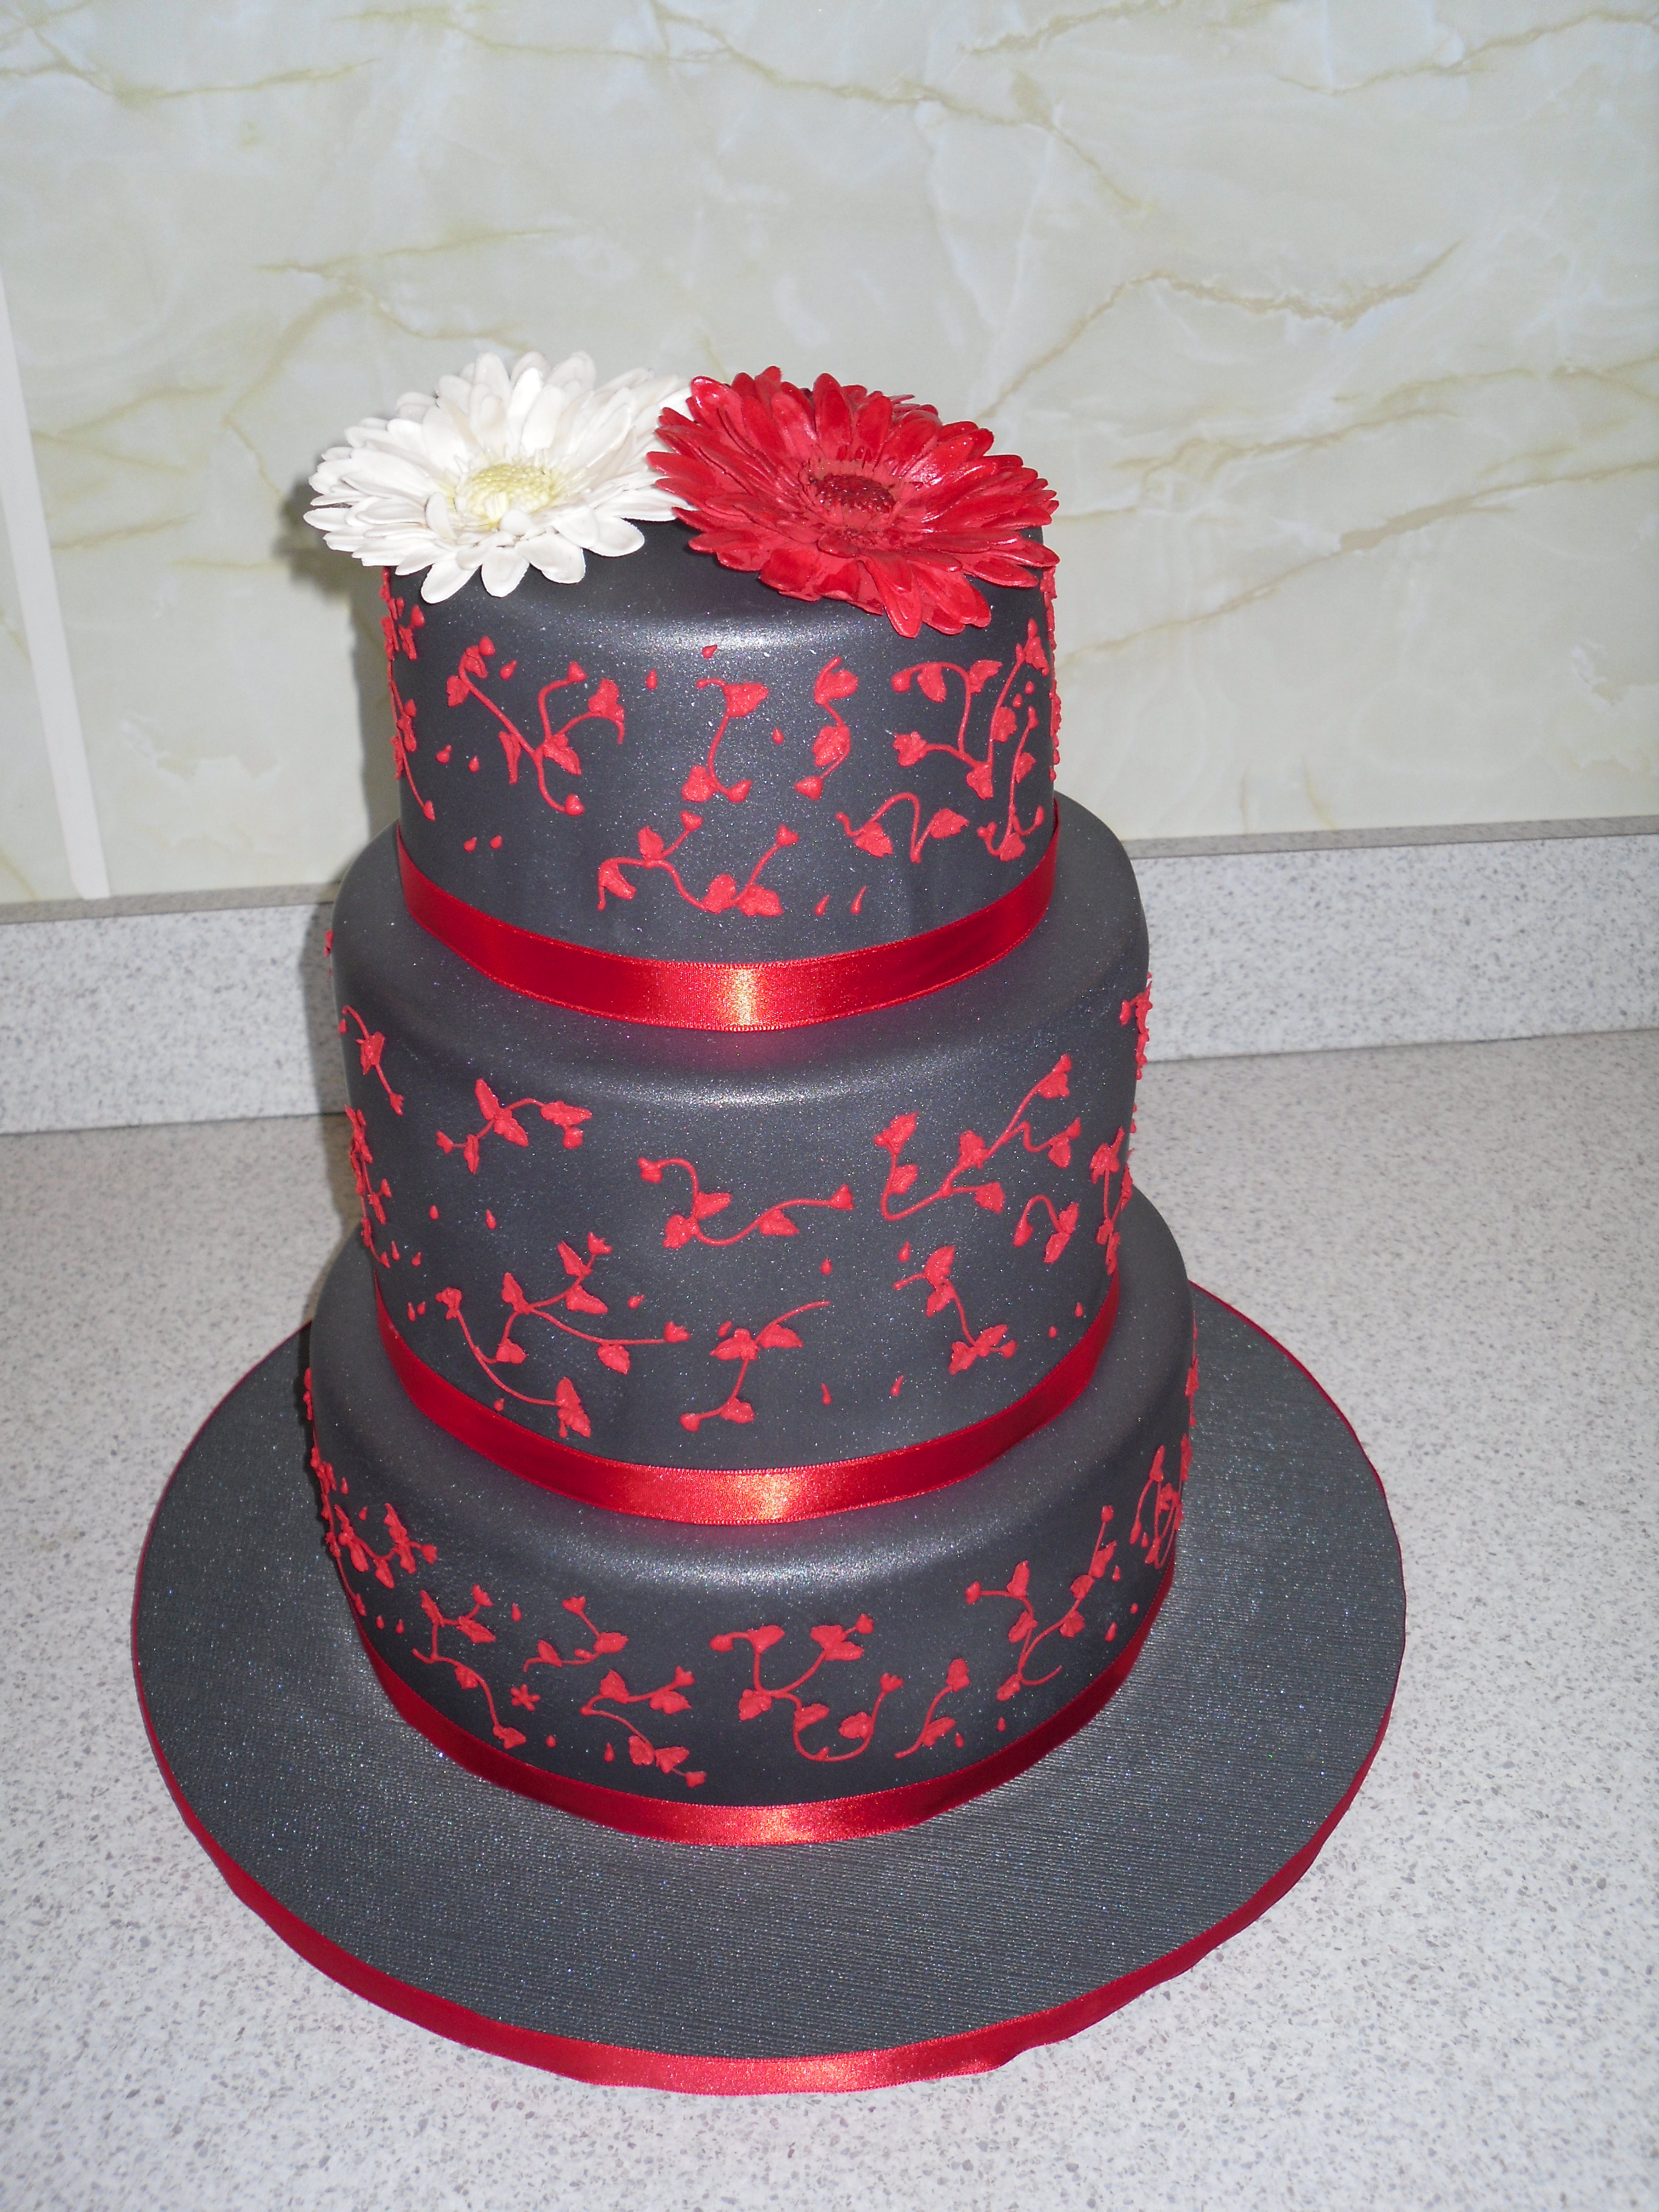 Cake Design Napier : Charcoal Wedding - Welcome to Cindys Cakes